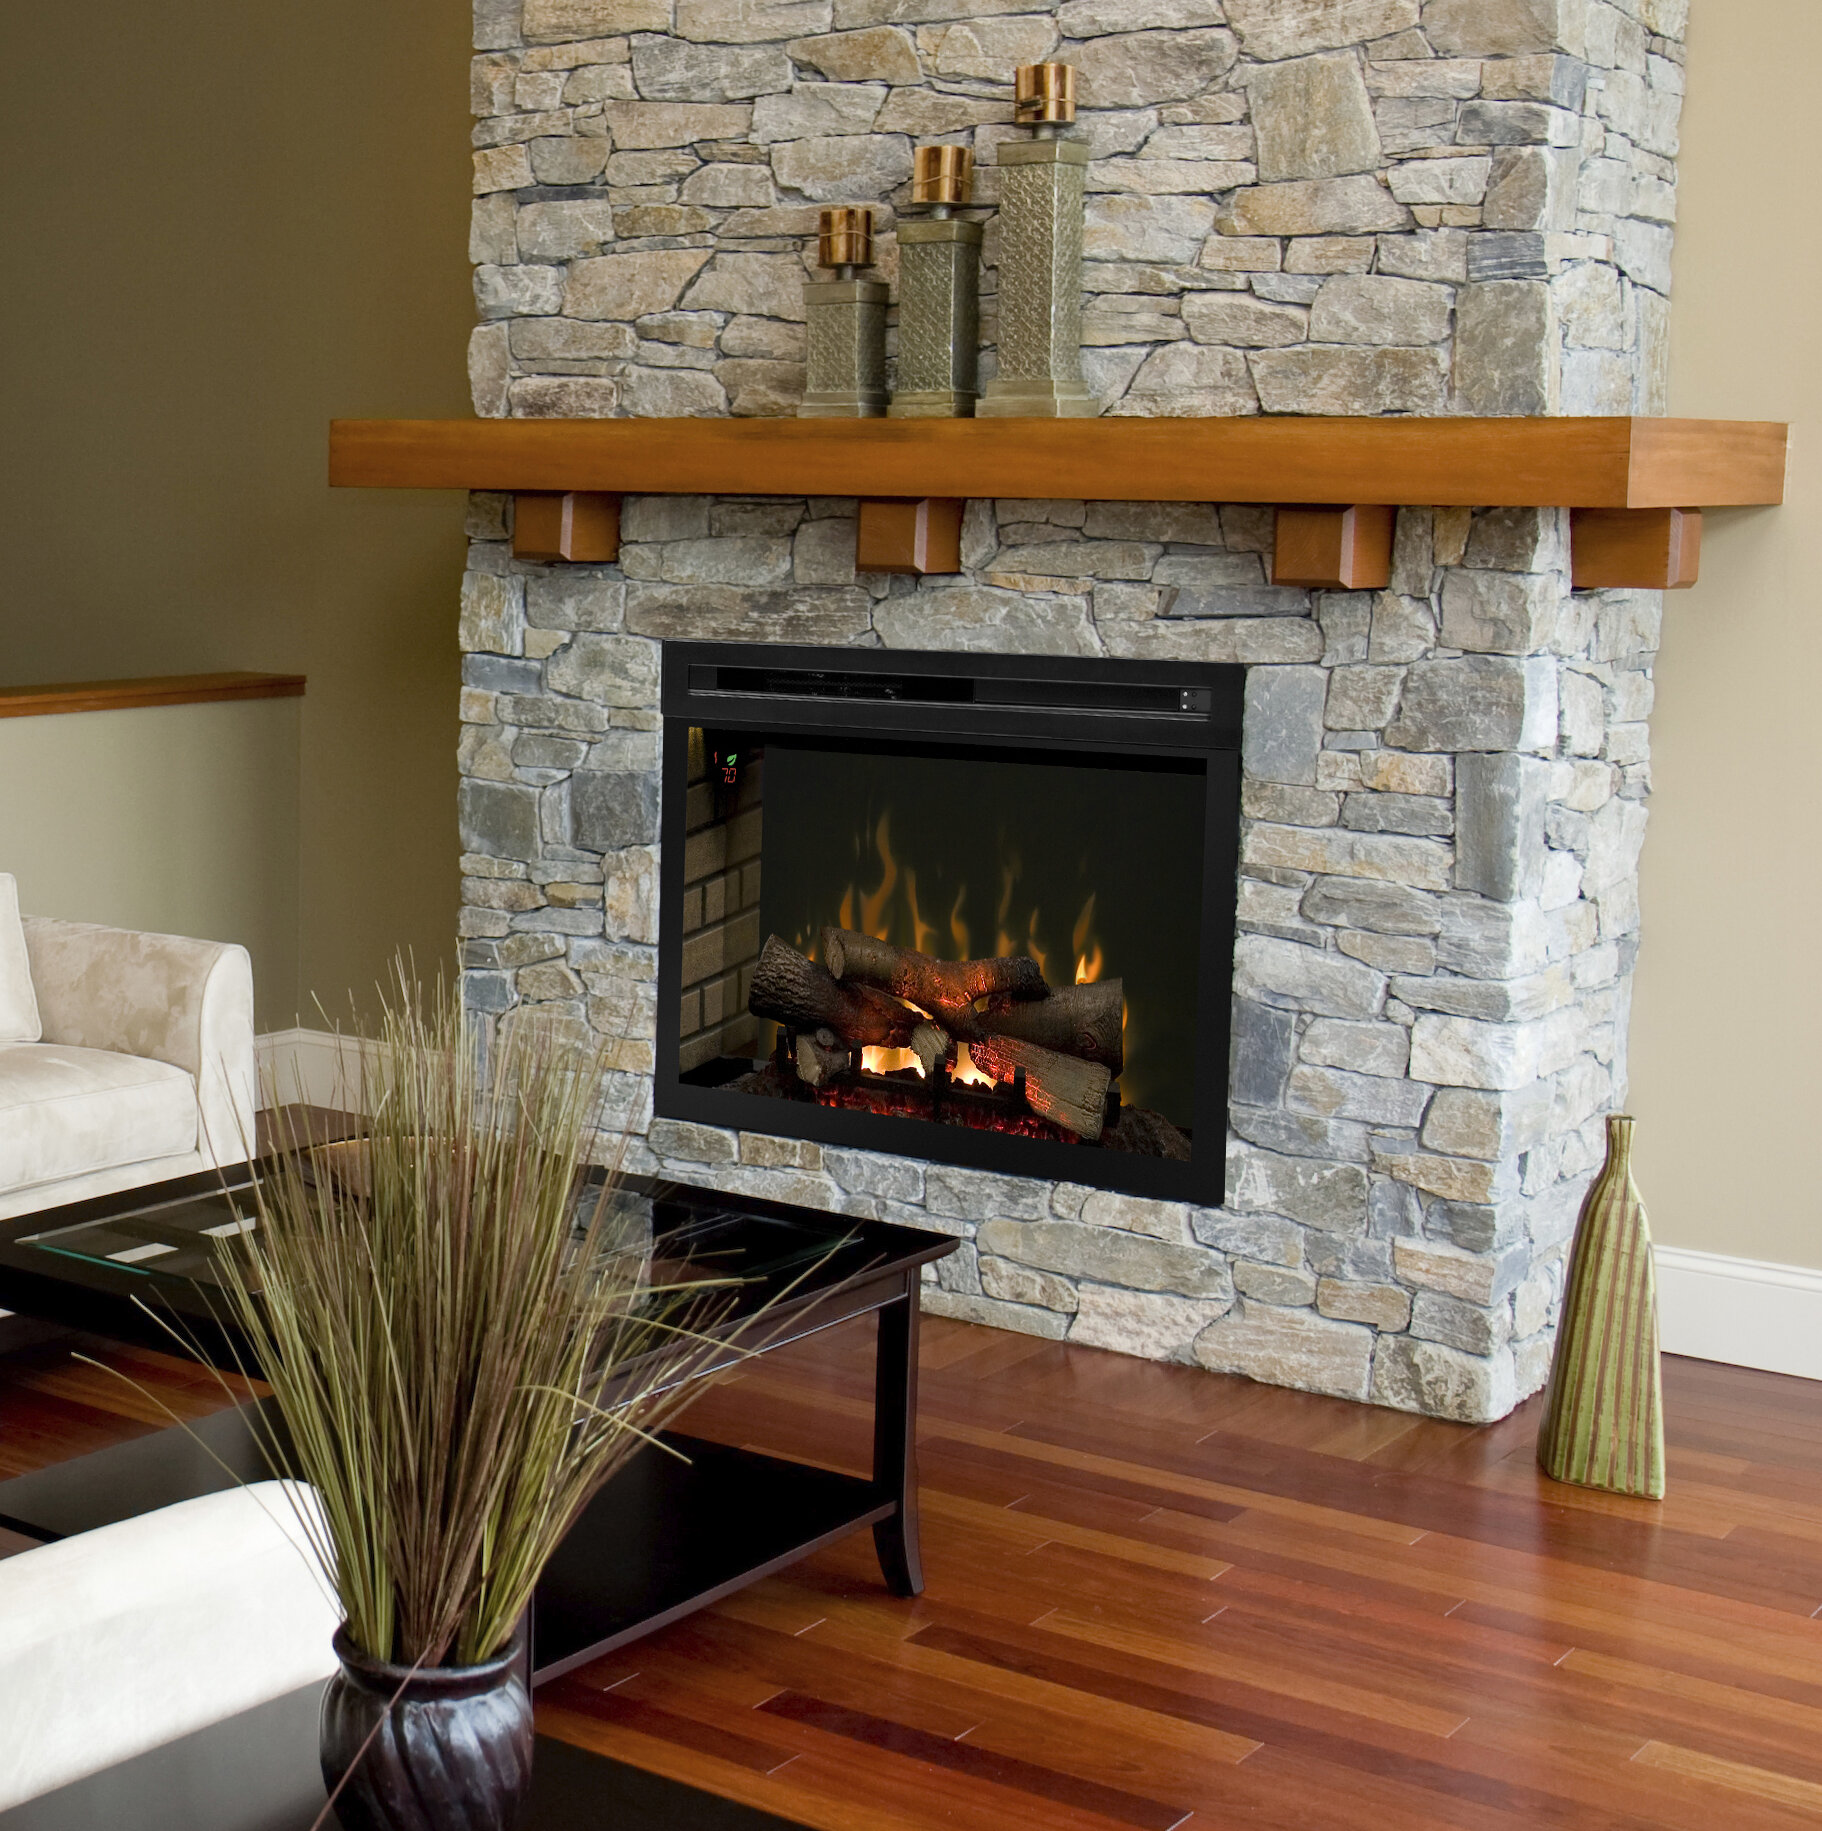 Dimplex Multi Fire Xd Wall Mounted Electric Fireplace Insert  # Dimplex Foyer Electrique